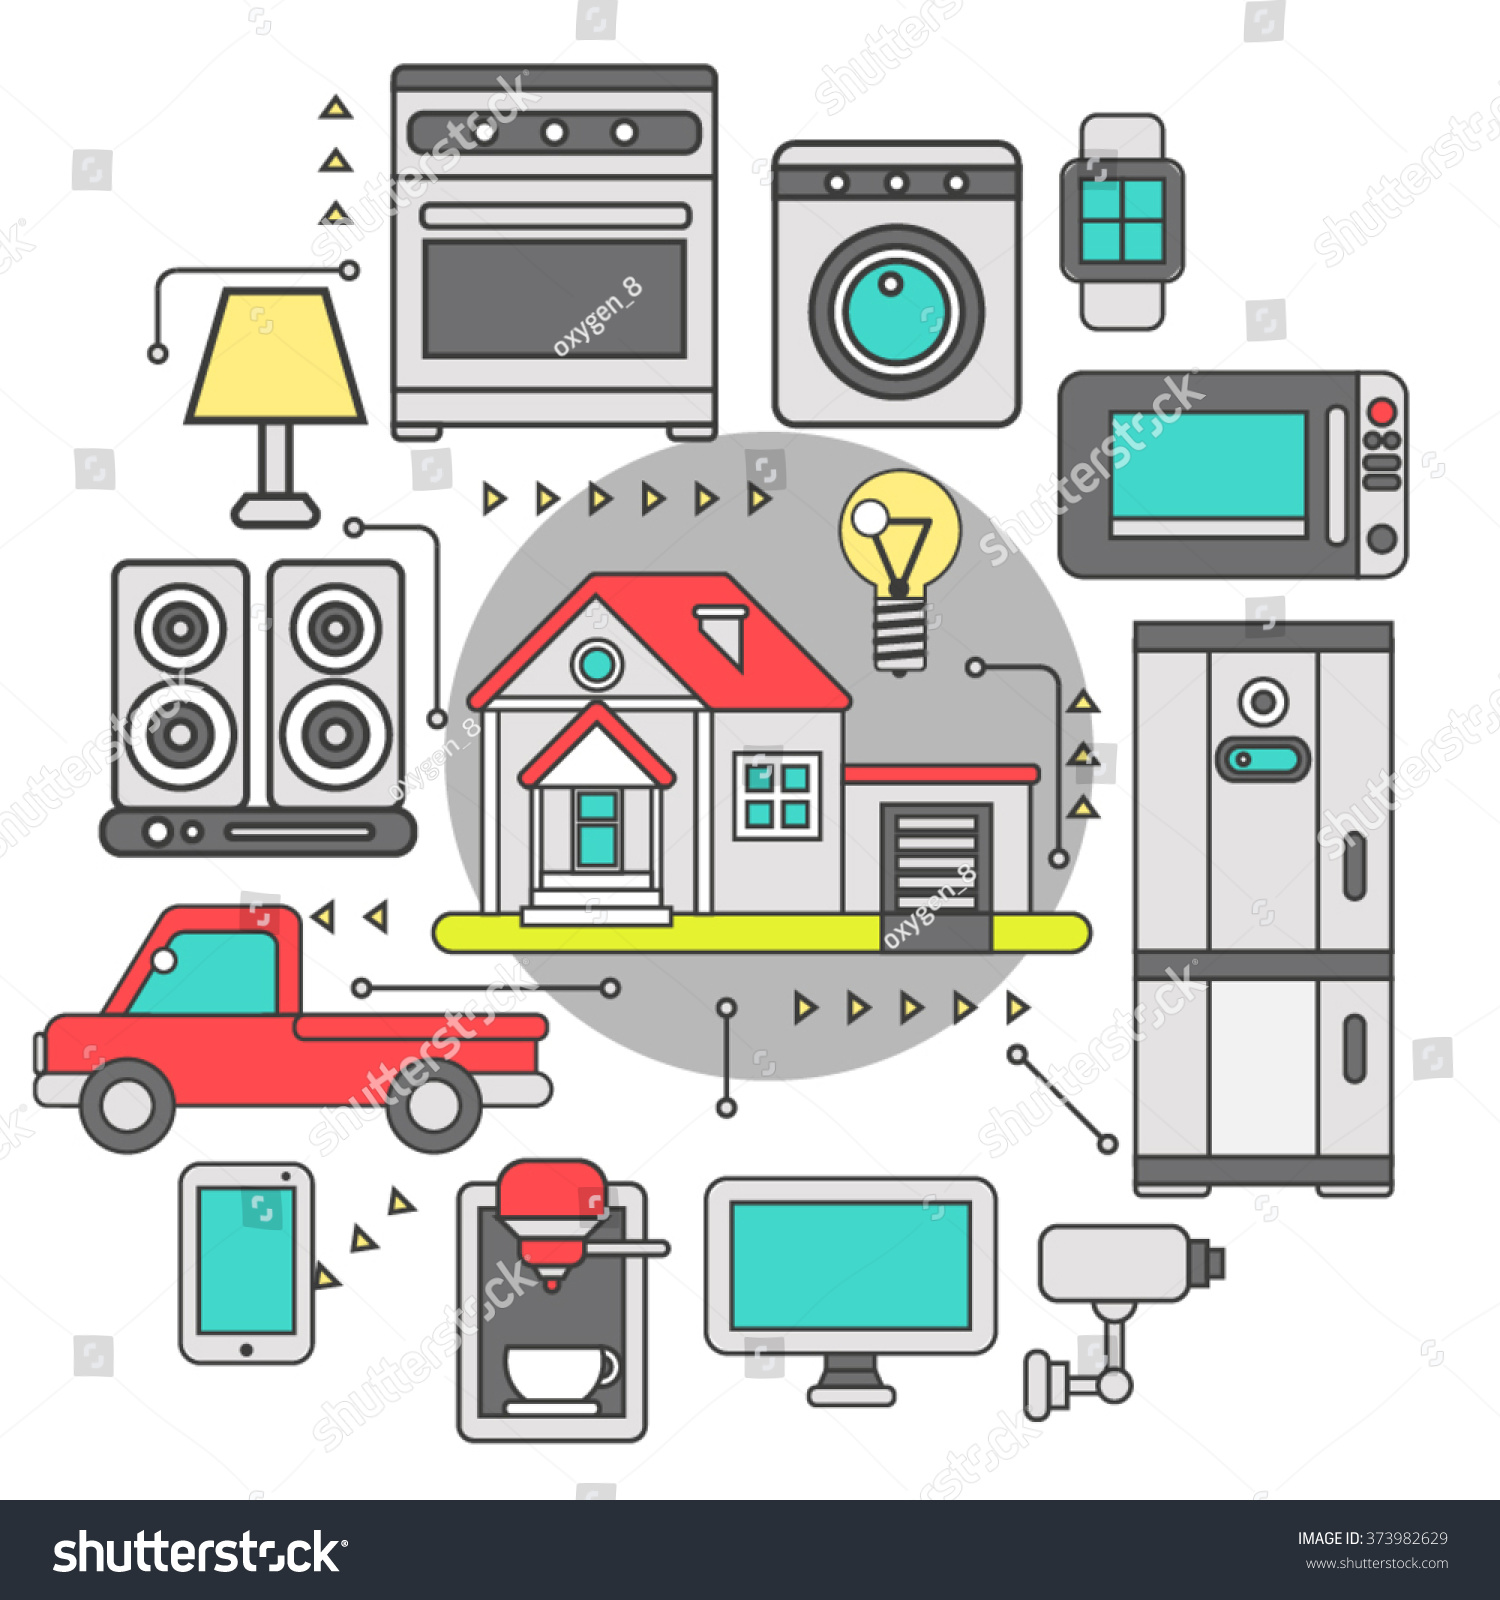 Smart home iot internet things control stock vector for Internet house